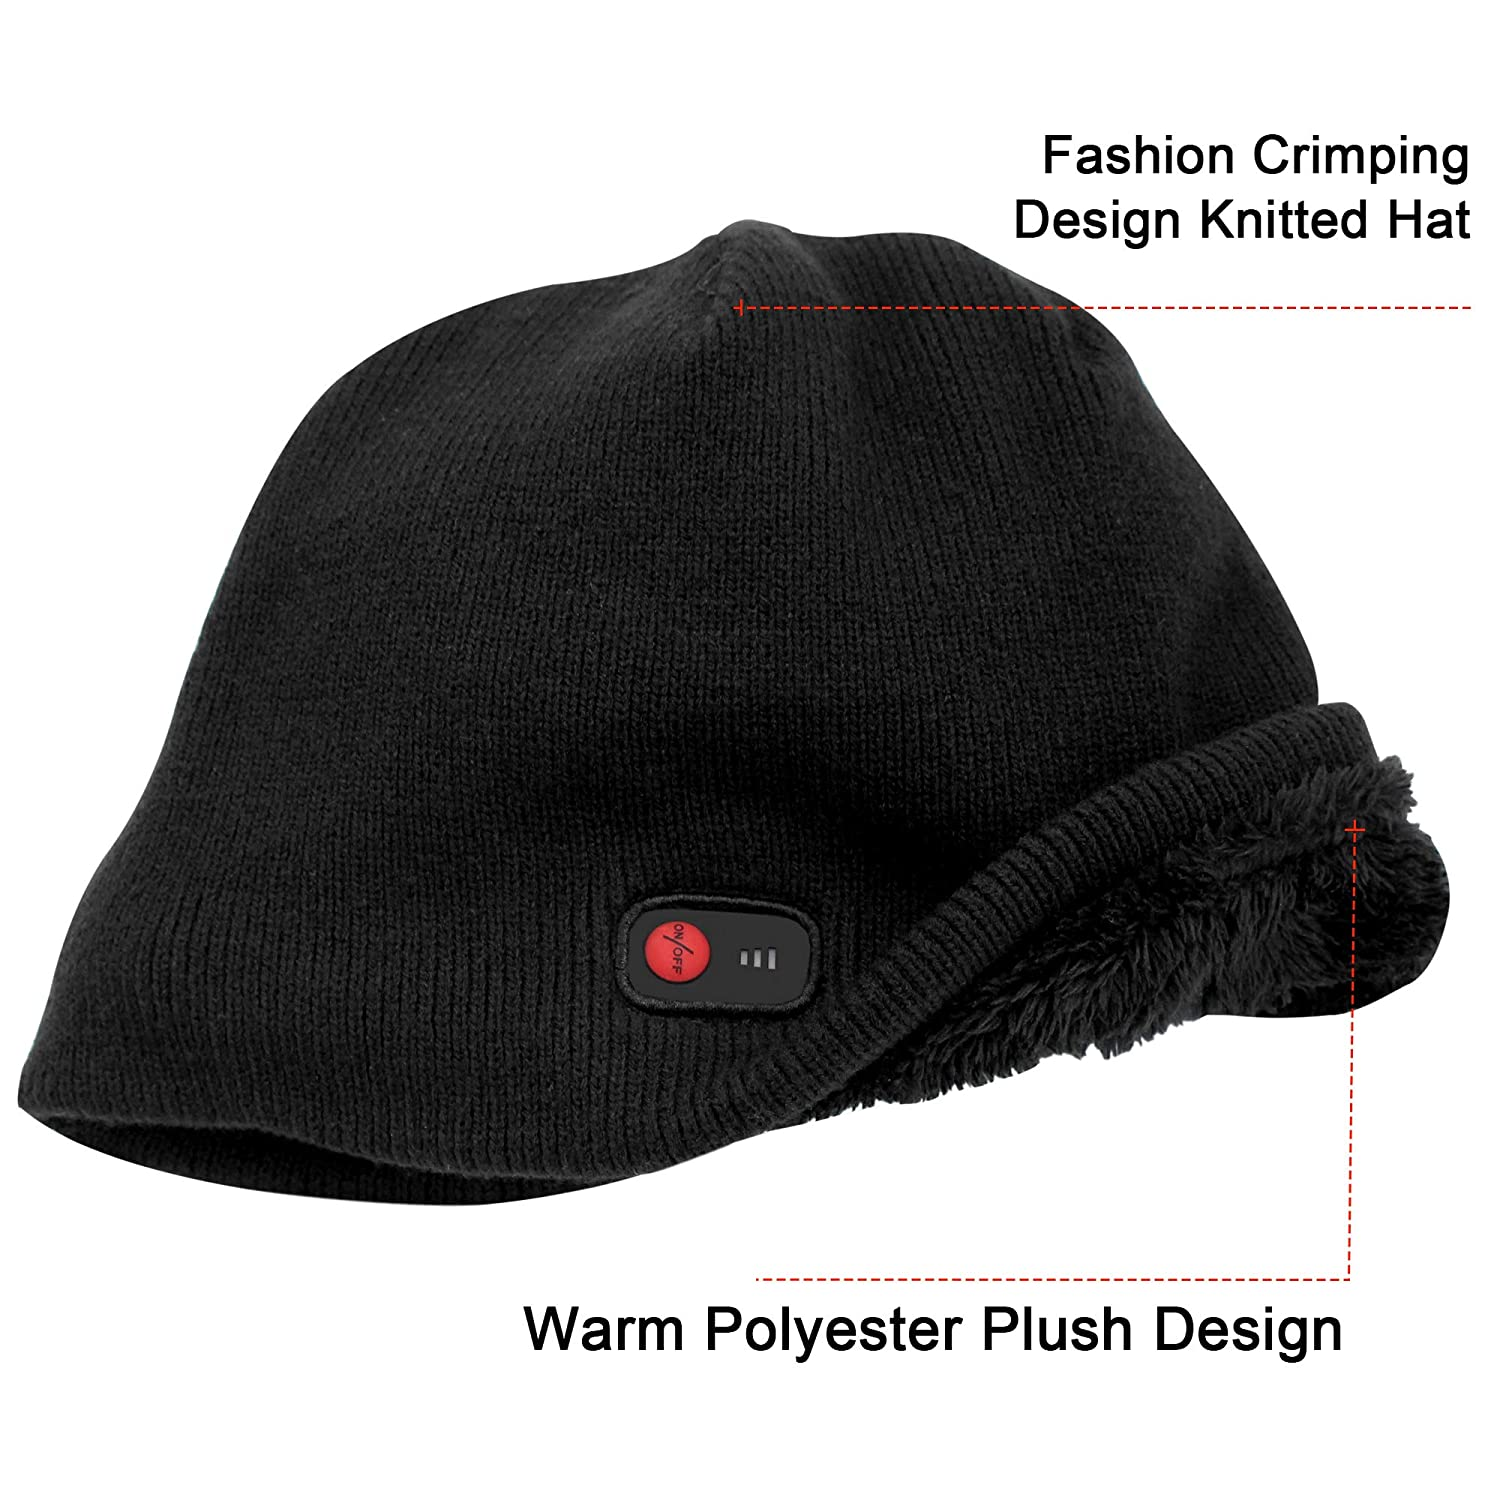 3c5b2174ecd QILOVE Women Men Winter Warm Knit Hat Electric Heated Hat Rechargeable  Battery Operated Snow Hat Thick Skull Cap Slouchy Beanie for Outdoor Sports  Hunting ...